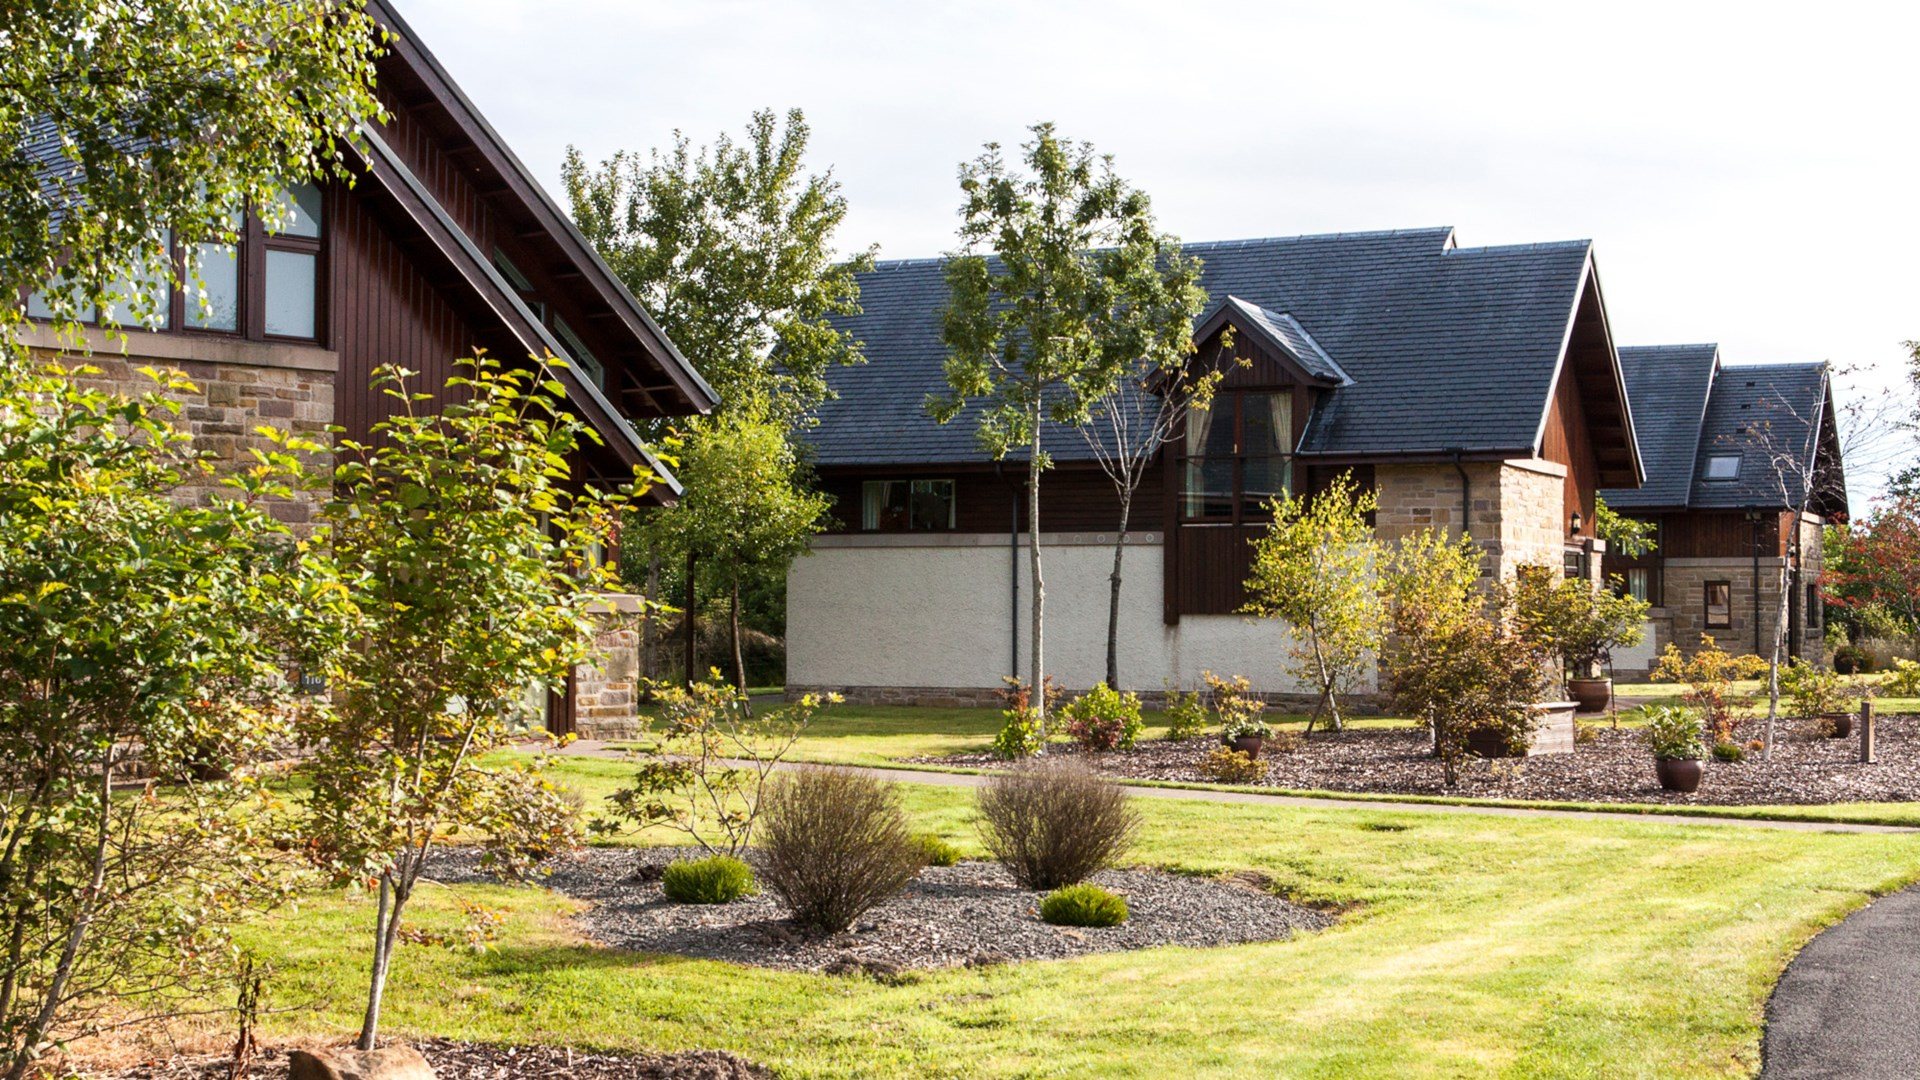 Exterior of four-bedroom detached lodges and the surrounding gardens at Cameron Club on a sunny day.